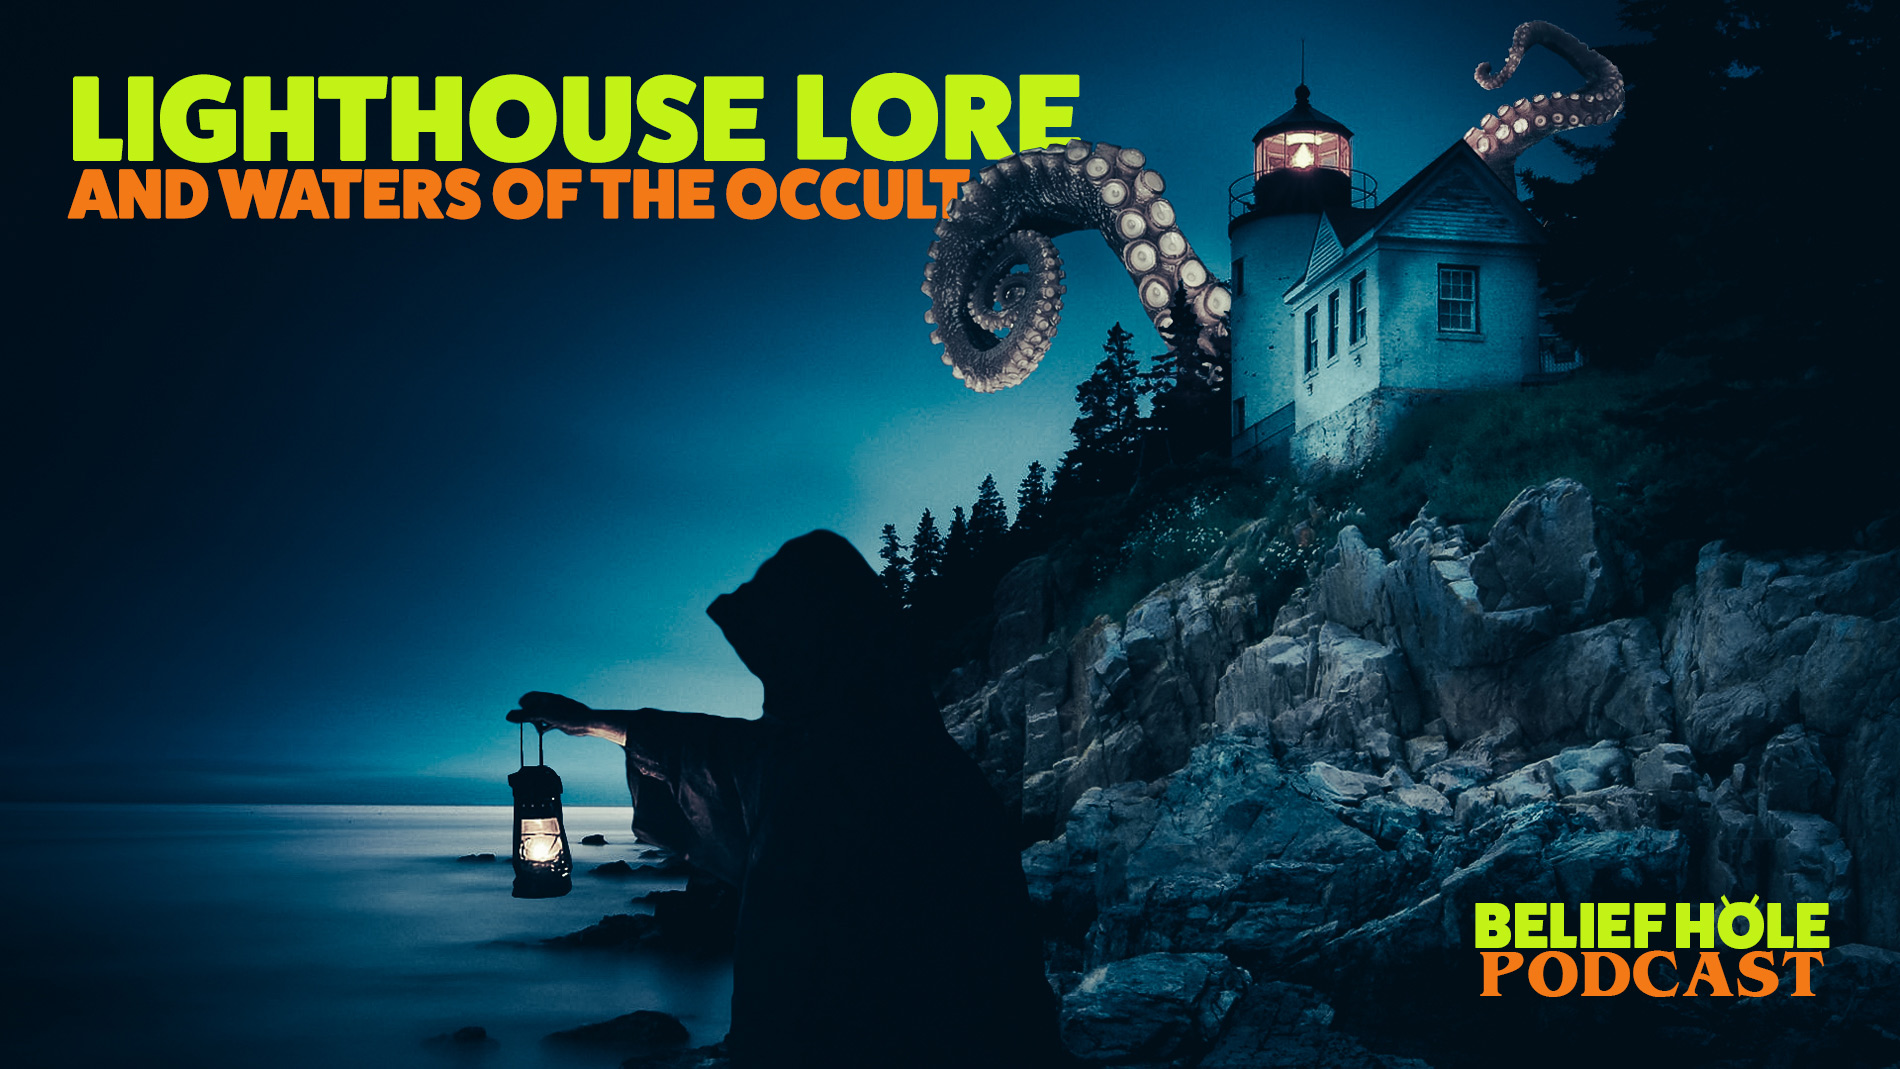 Haunted Lighthouse Lore